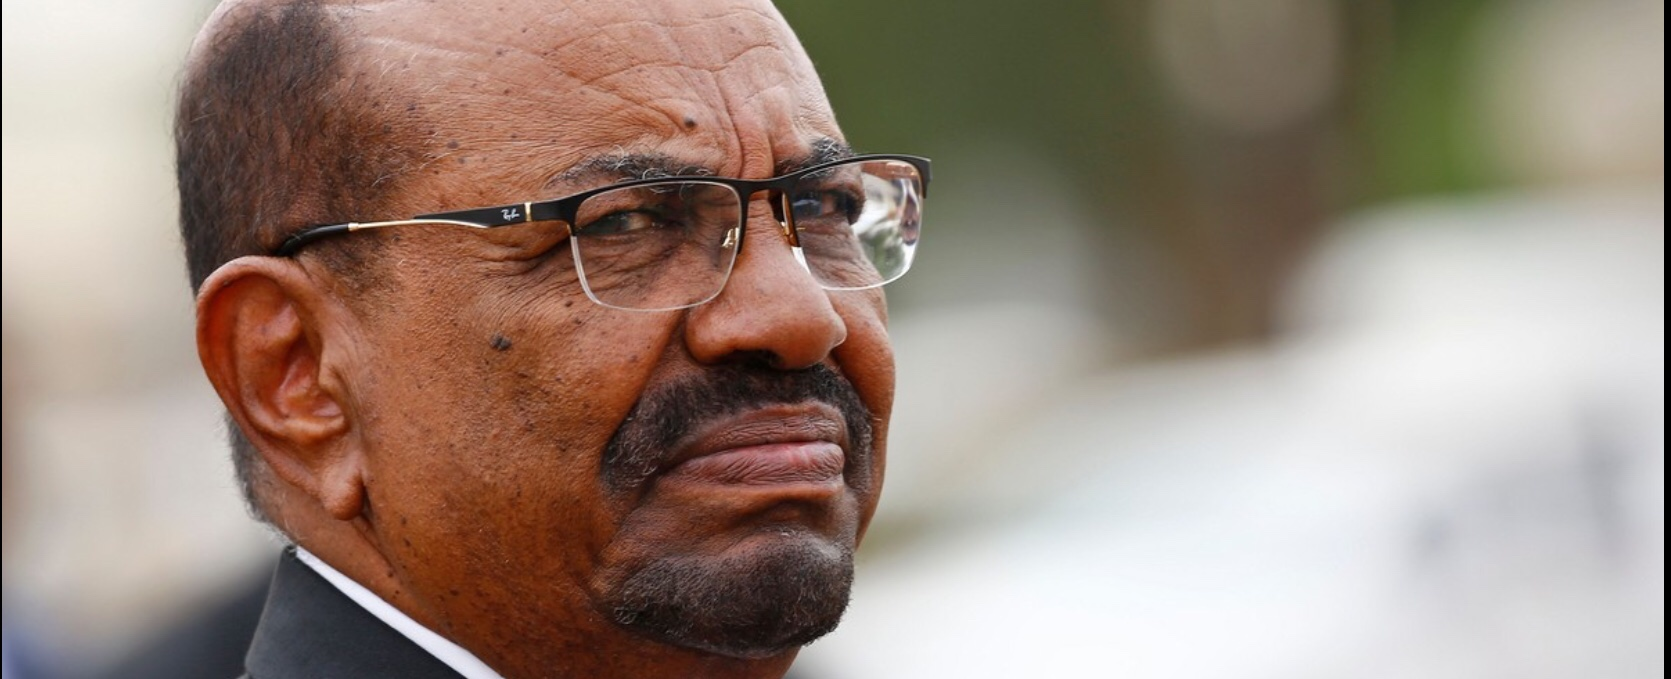 Al-Bashir $4bn assets confiscated